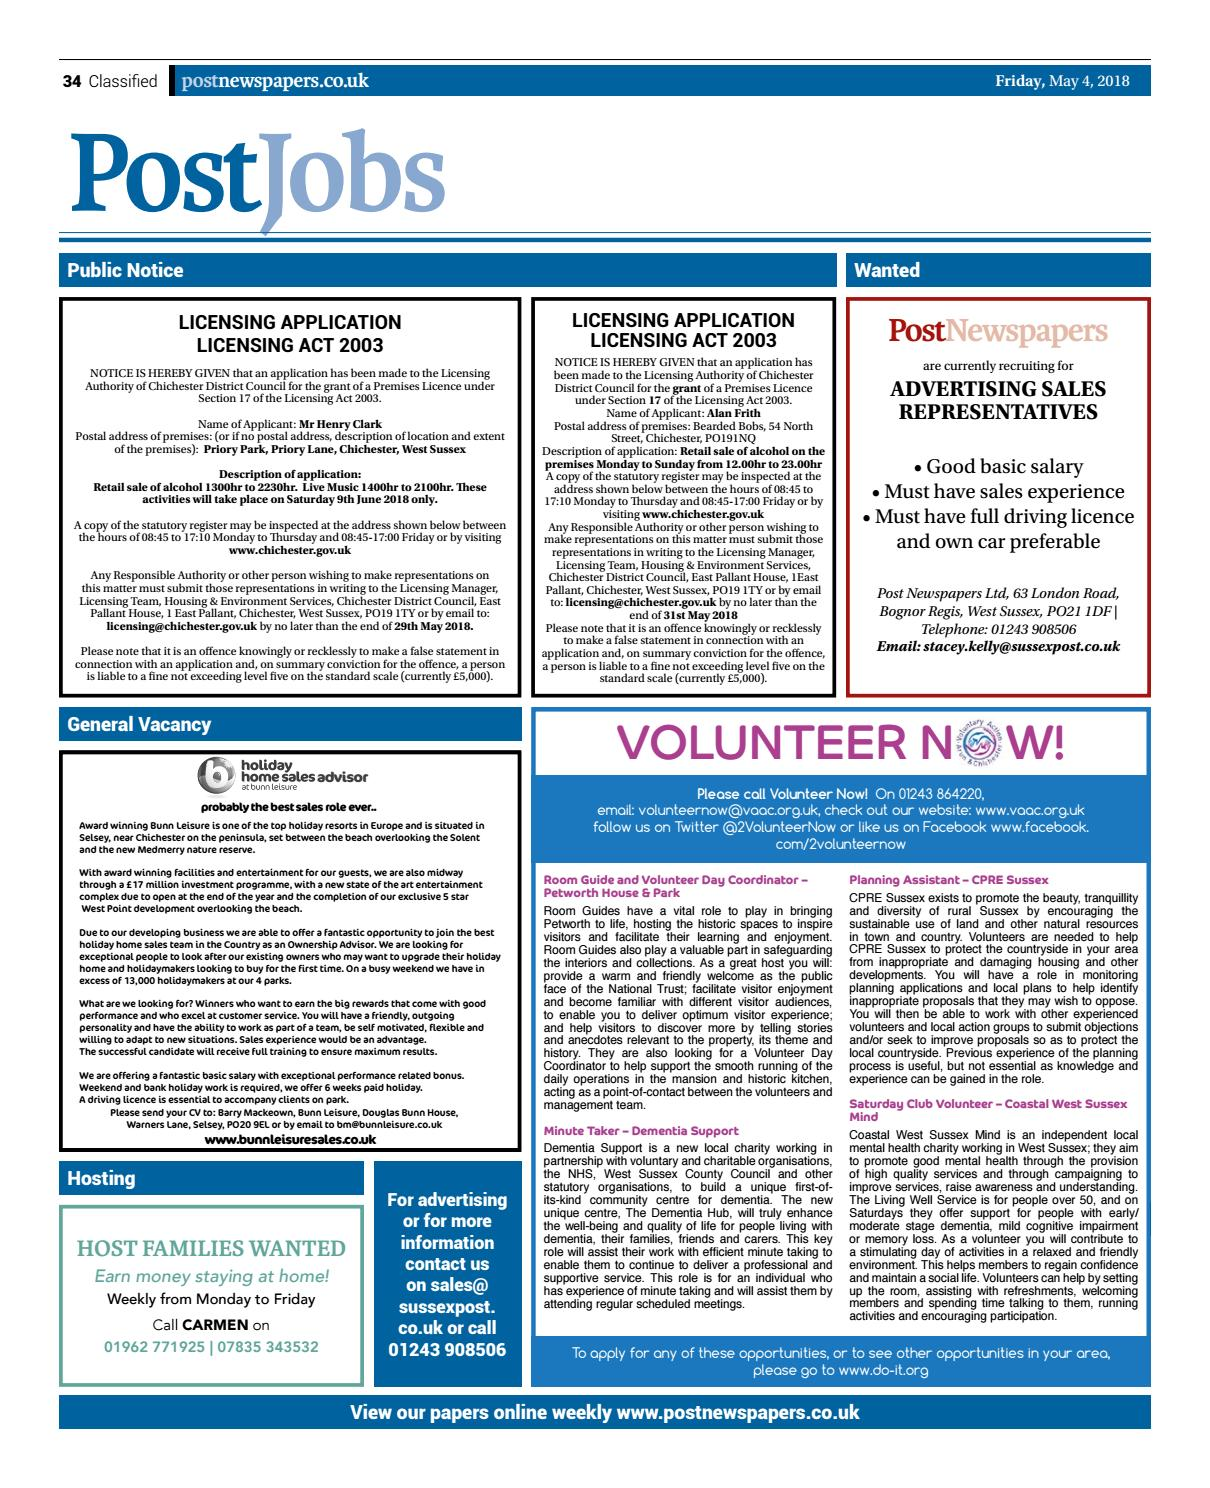 Chichester Post Issue 105 by Post Newspapers - issuu